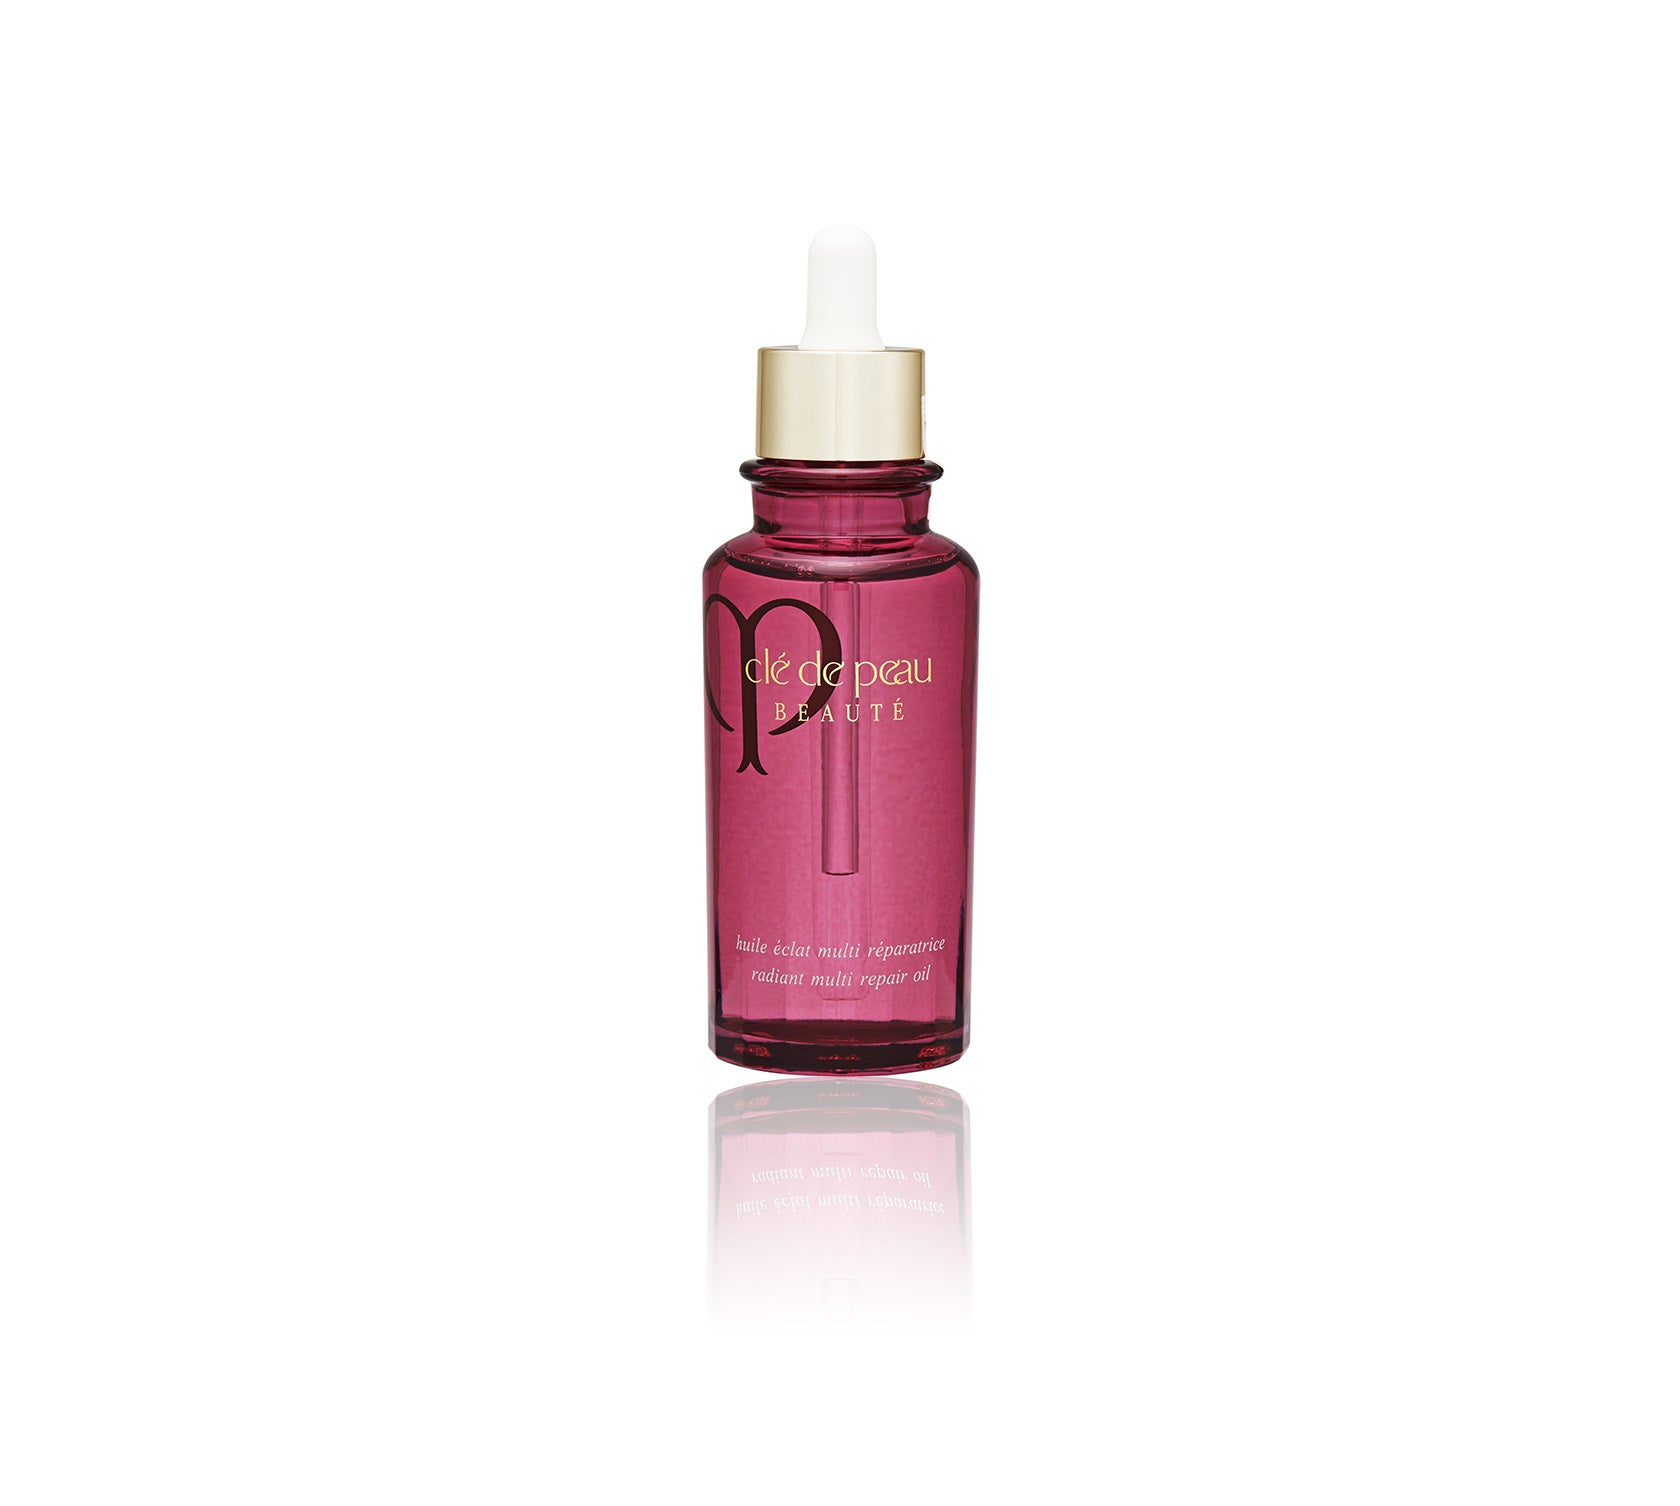 Radiant Multi Repair Oil